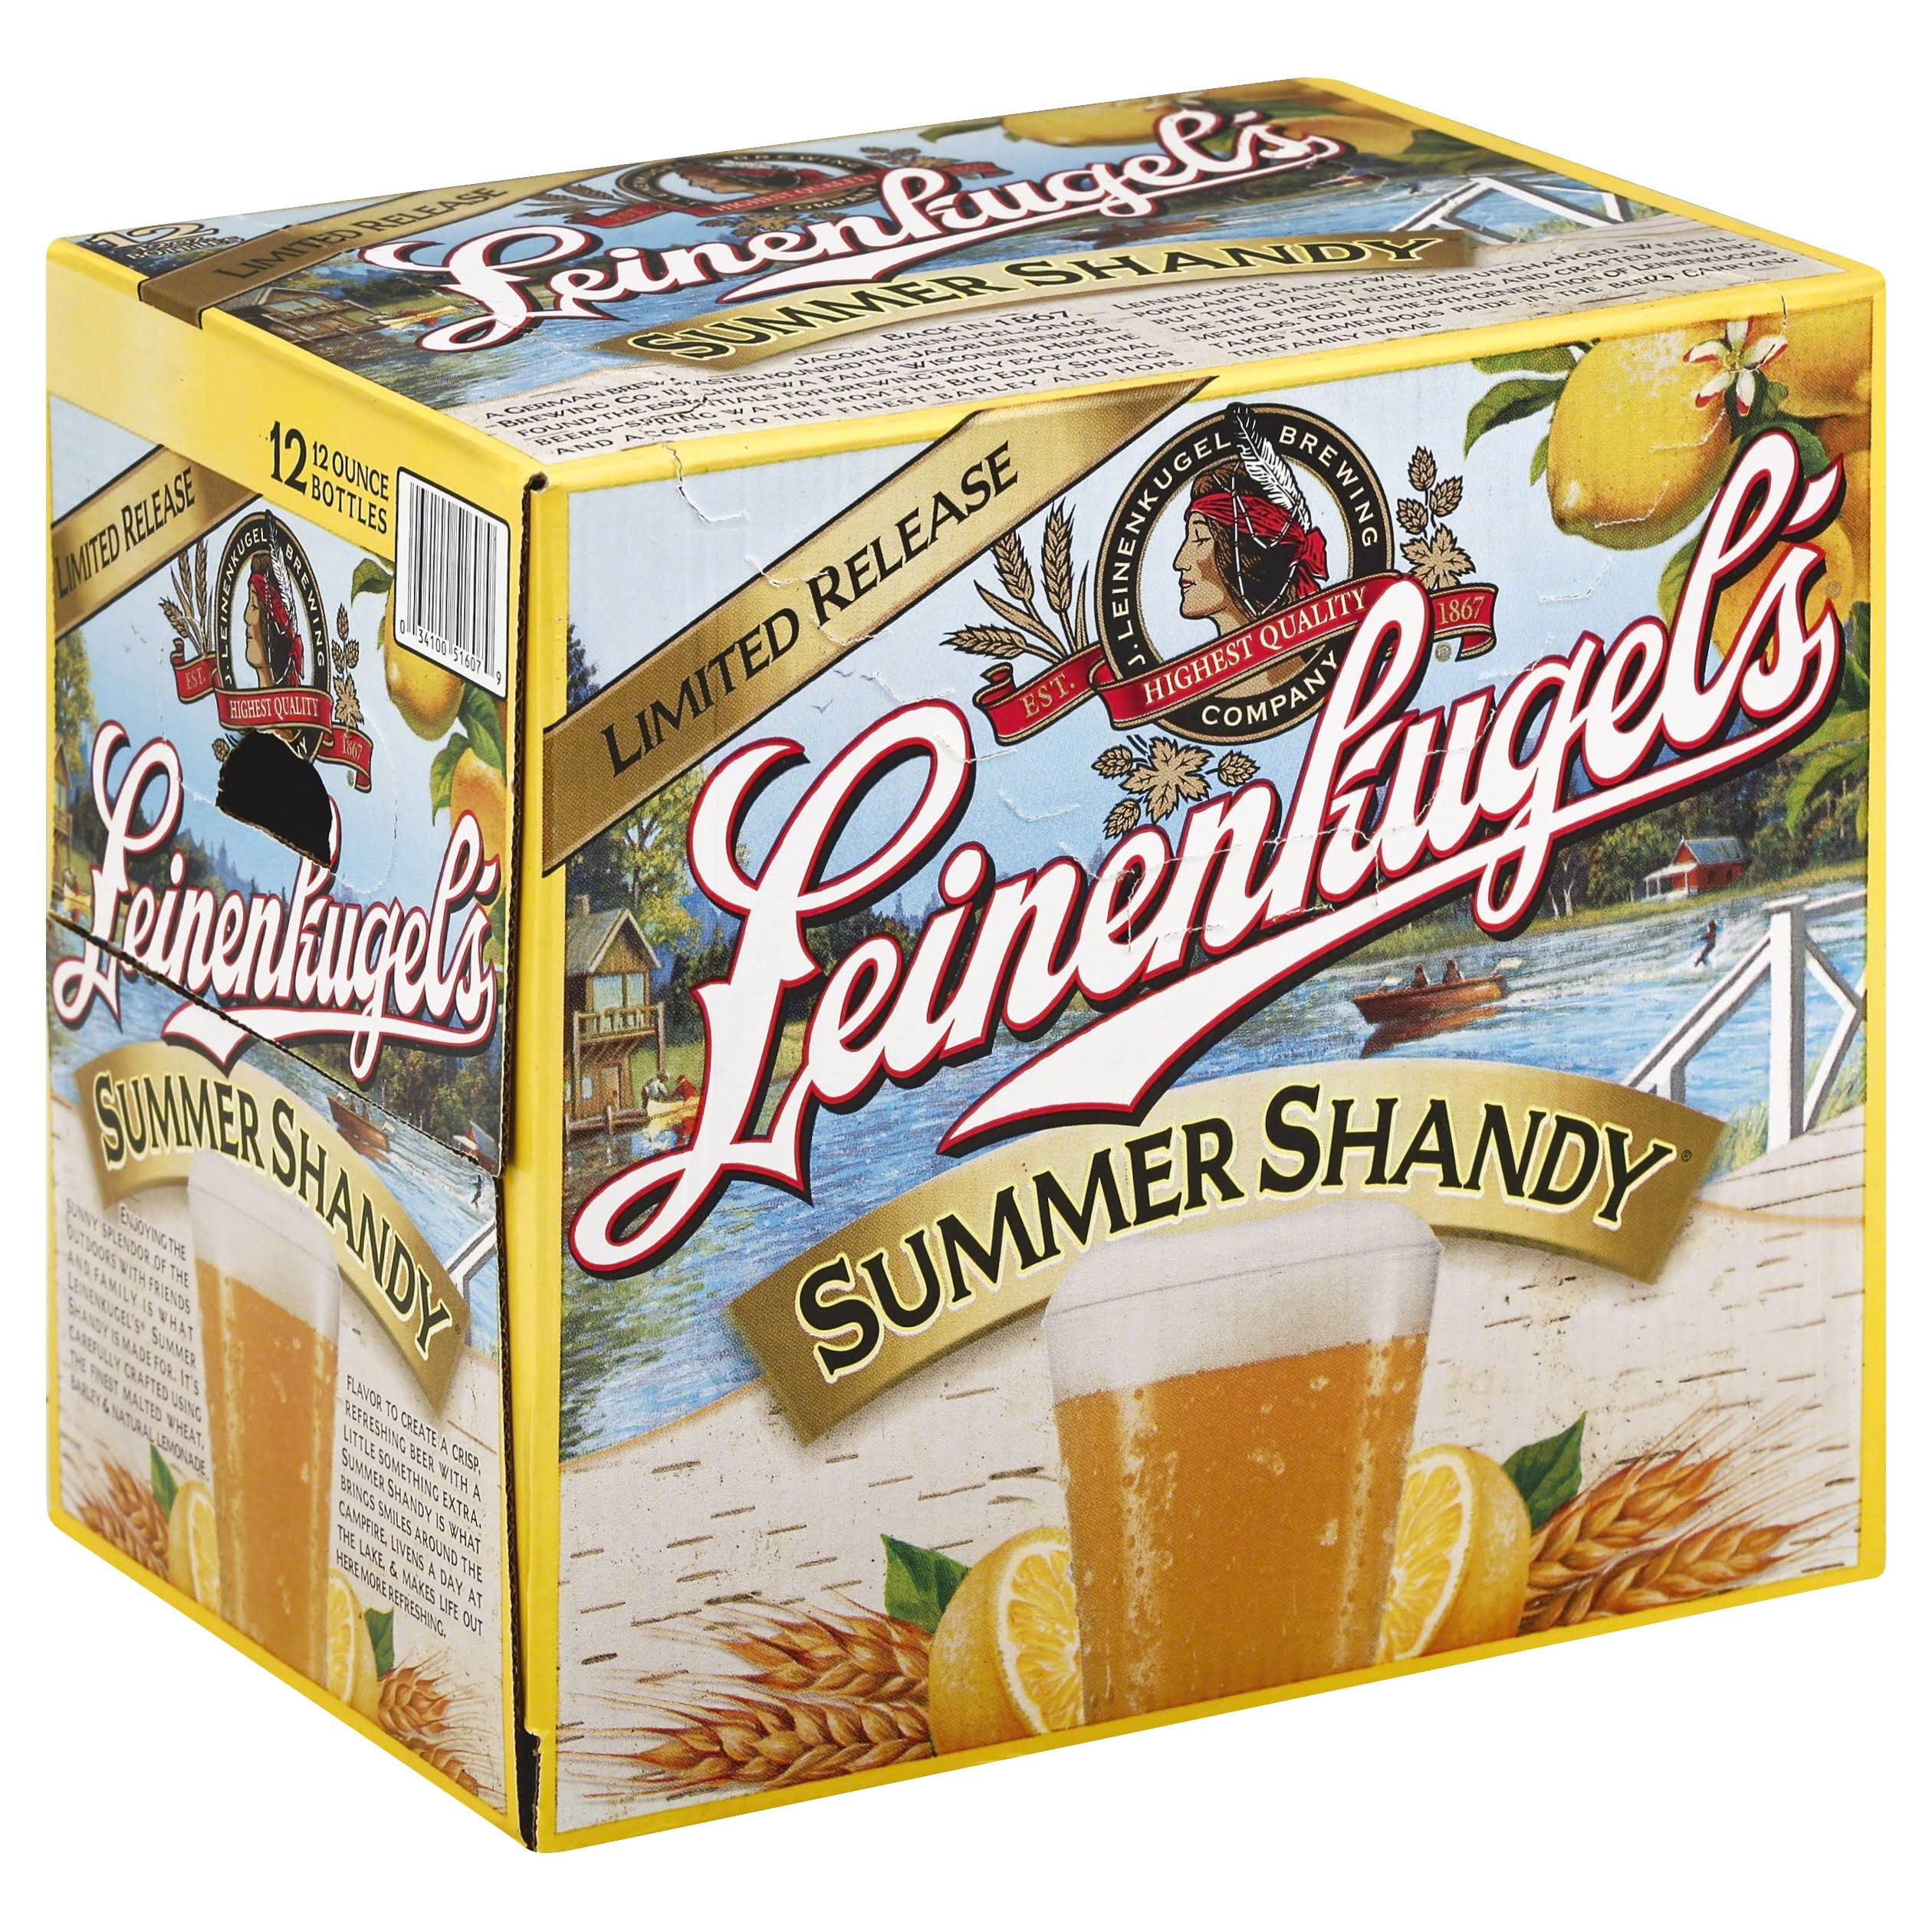 Leinenkugels Beer, Weiss, Summer Shandy - 12 pack, 12 oz bottles